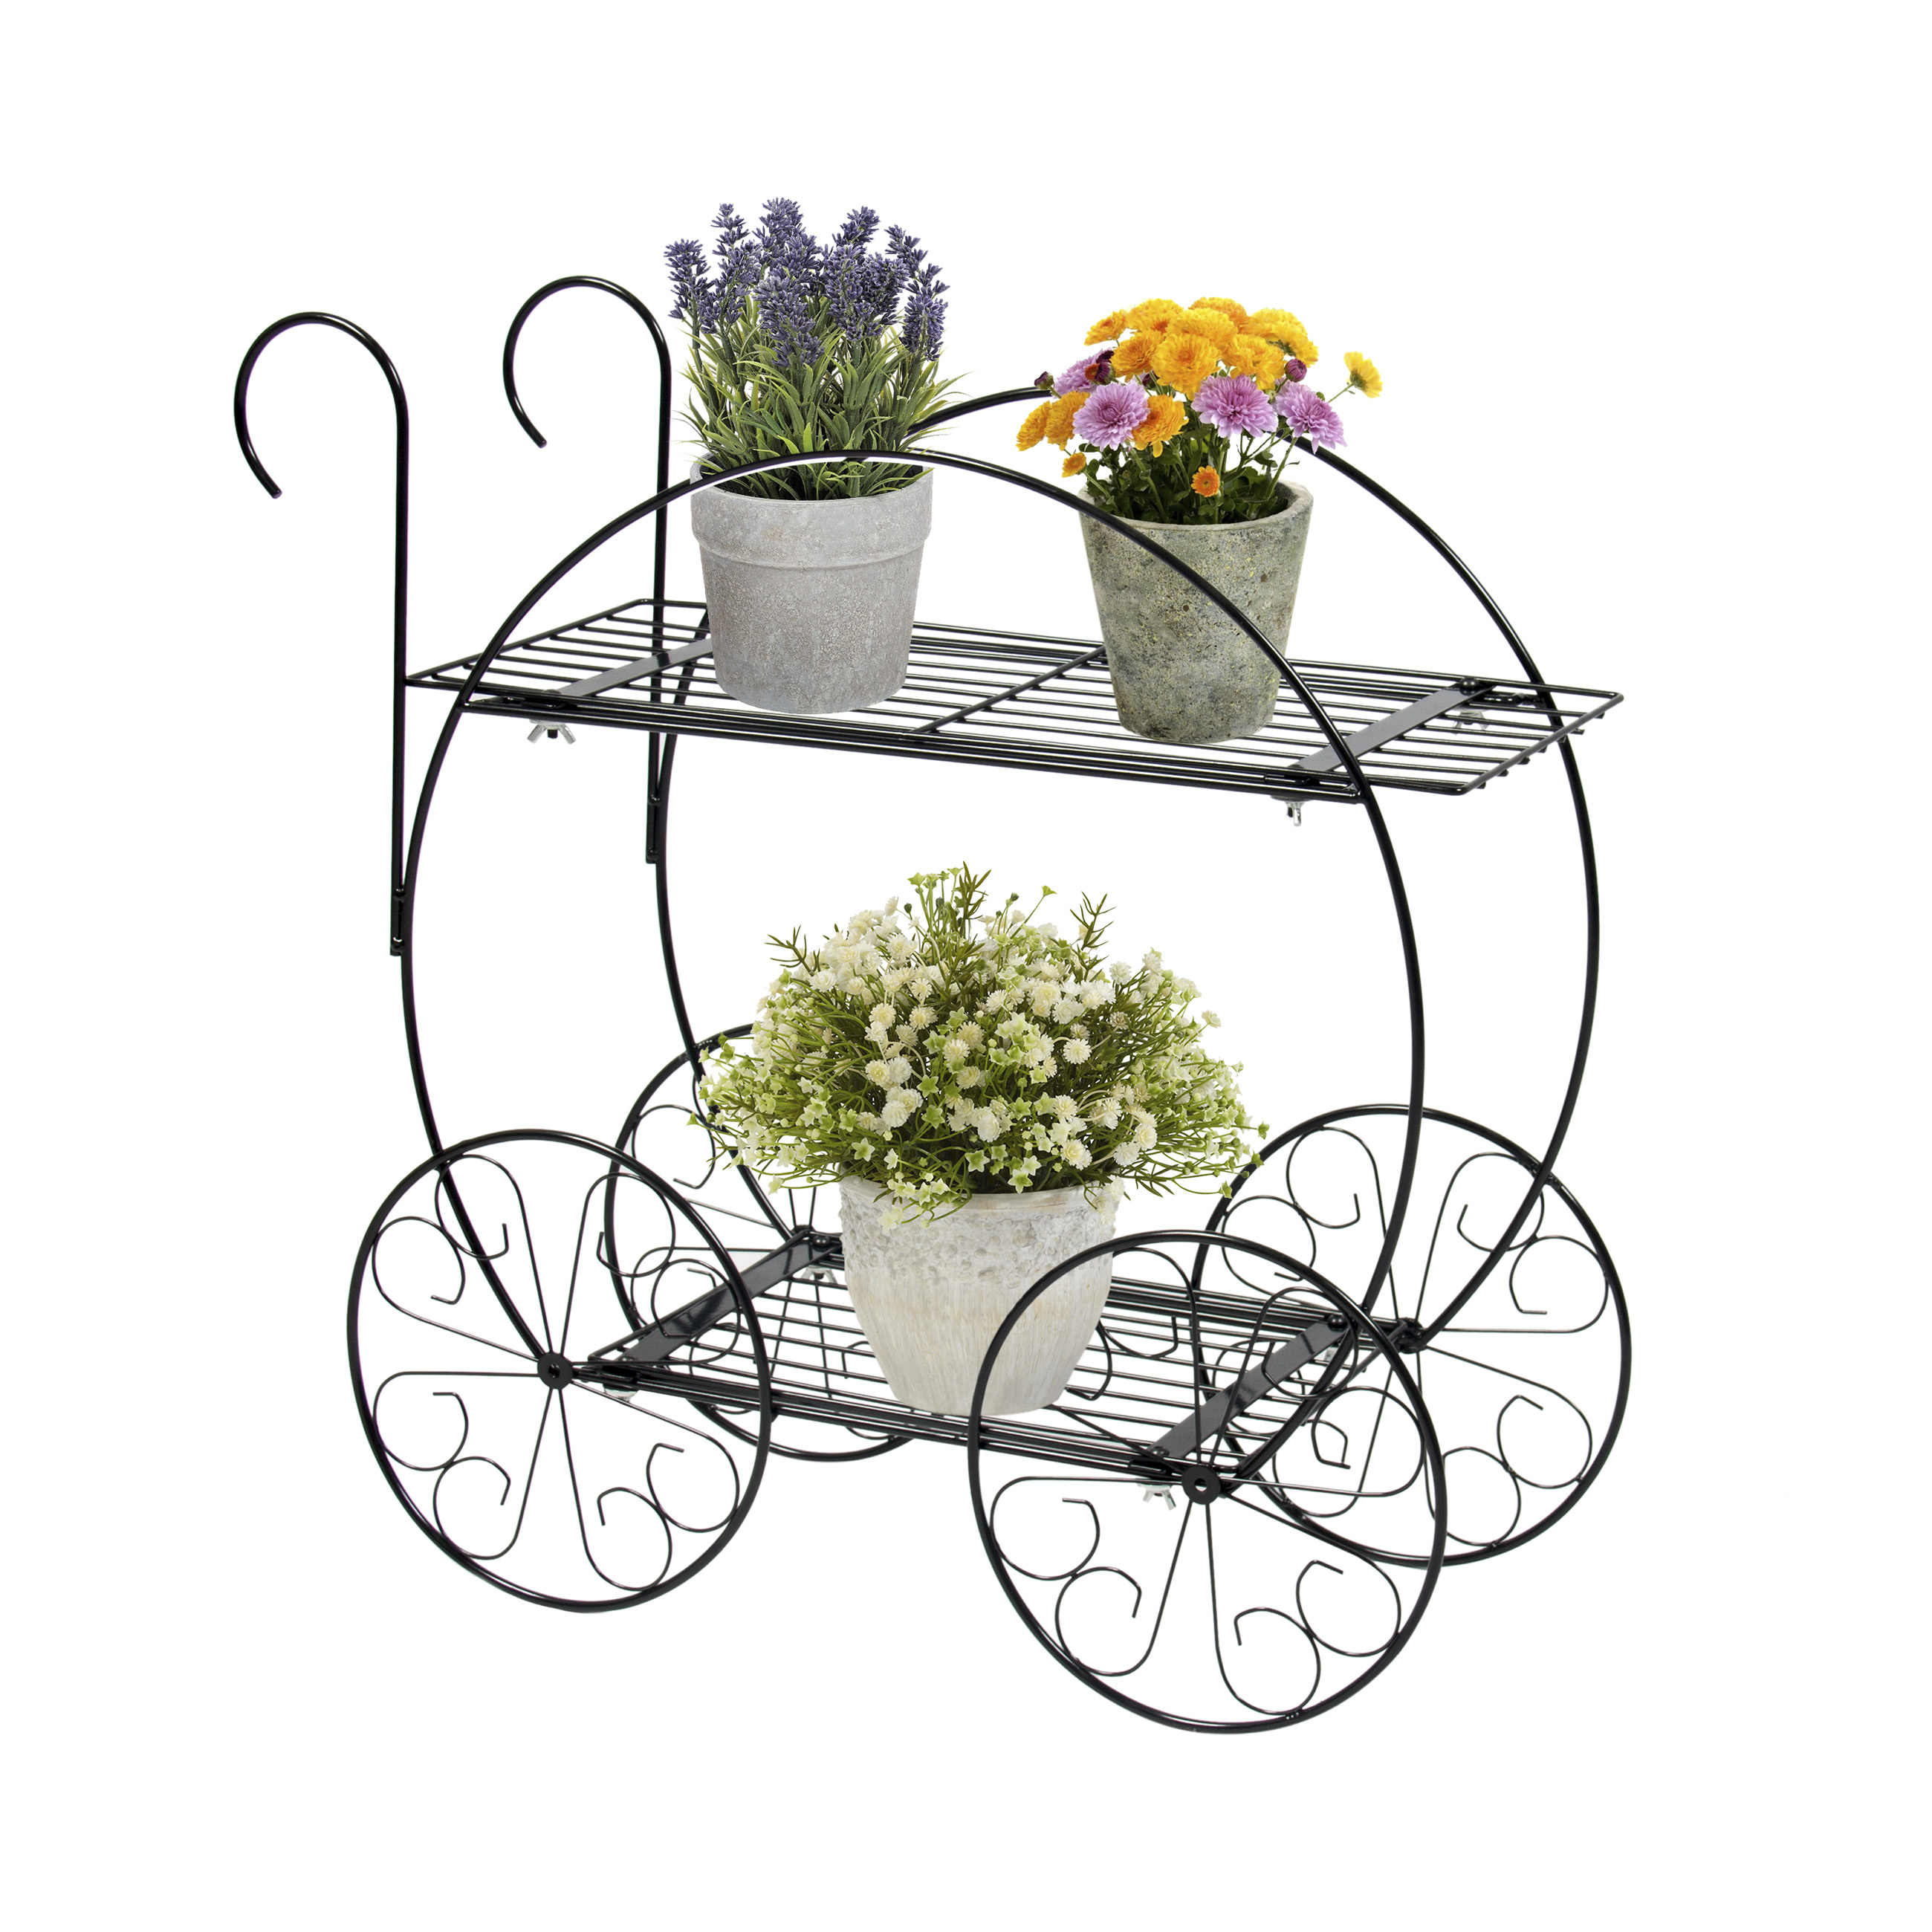 Best Choice Products 2-Tier Decorative Steel Garden Cart Plant Holder Stand for Home Decor, Patio, Flowers, Pots - Black